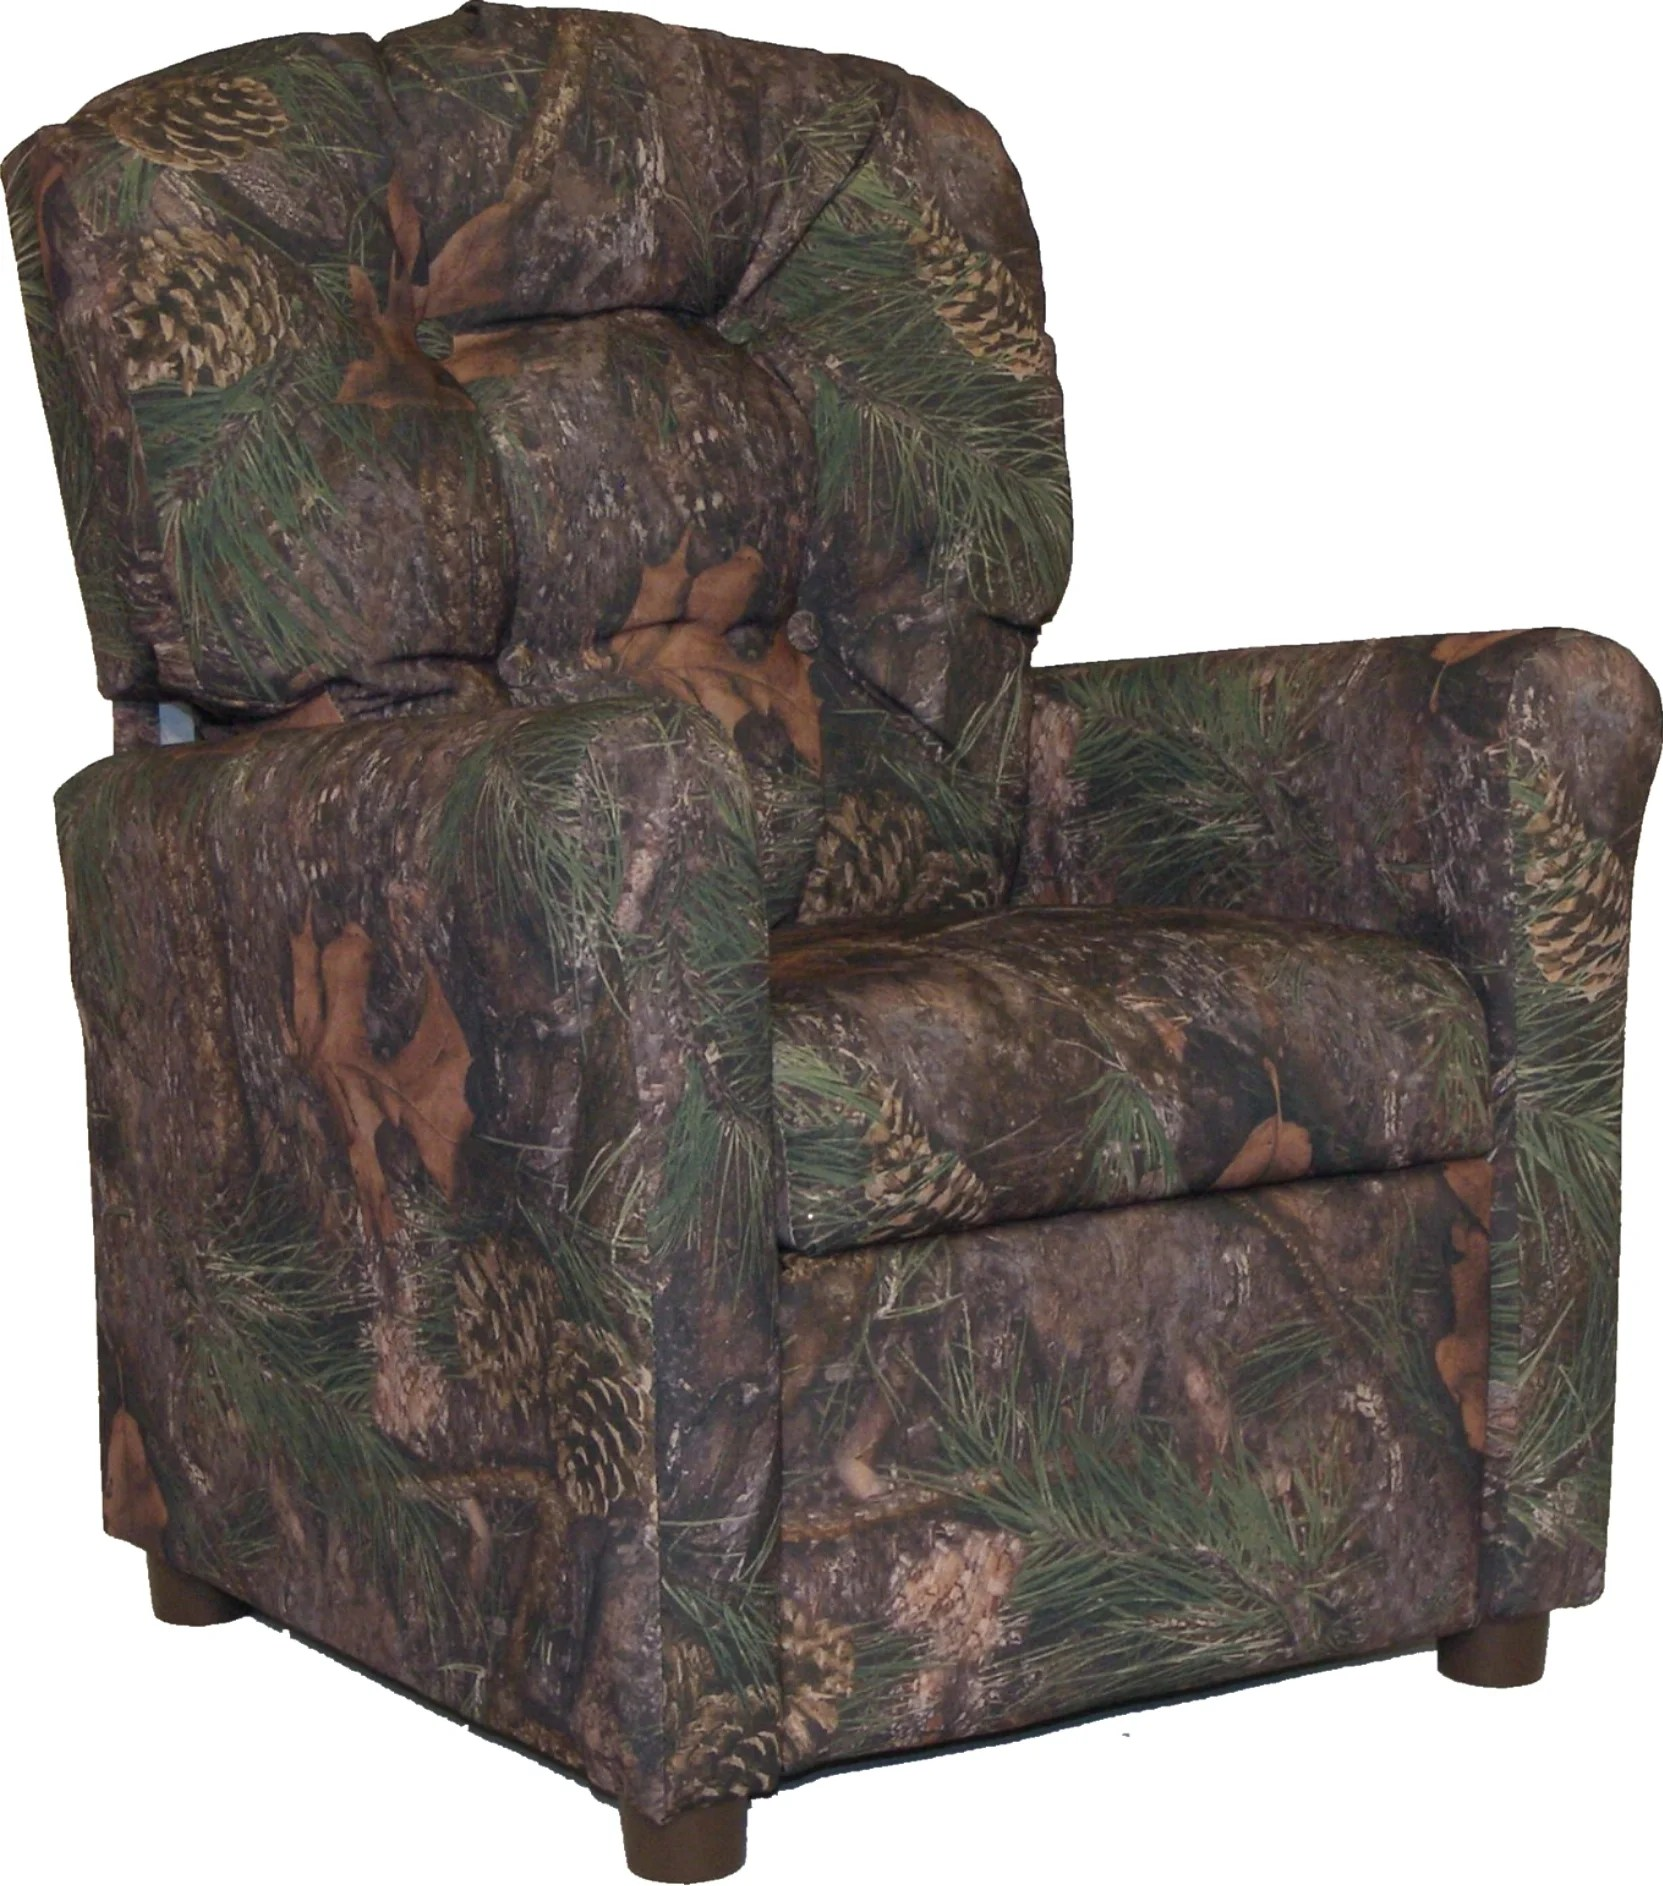 Camo Recliner Chair Brazil Furniture Mixed Pine Camo Kids Recliner